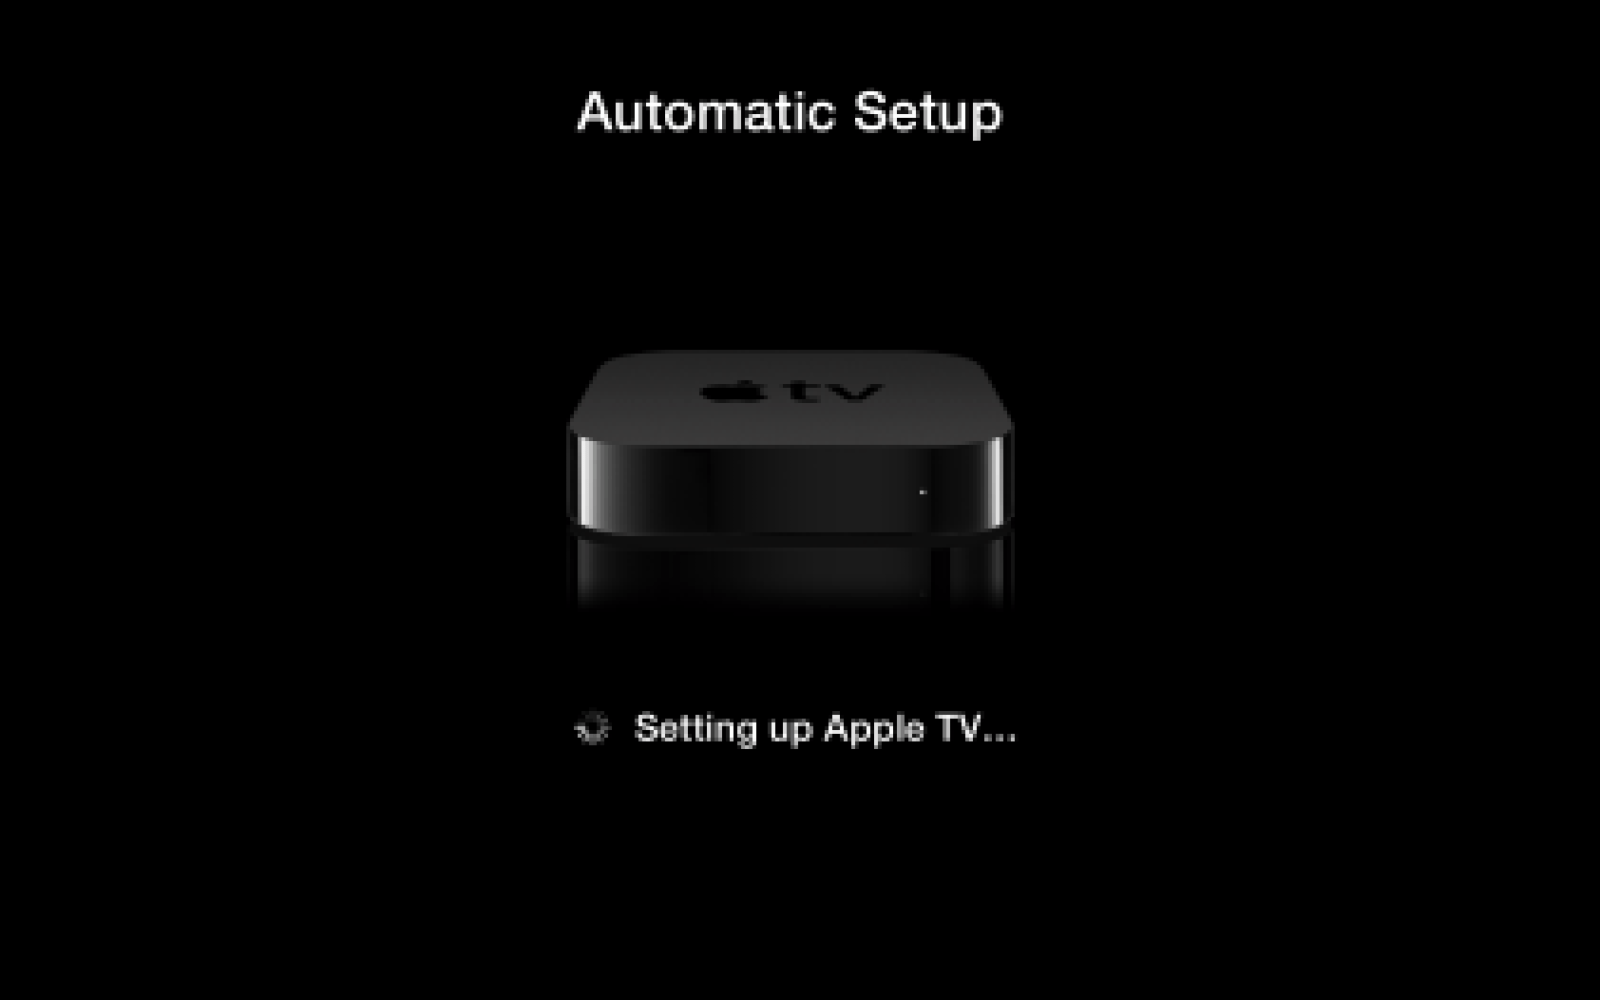 How-to: Automatically set up an Apple TV by touching it to your iOS Device